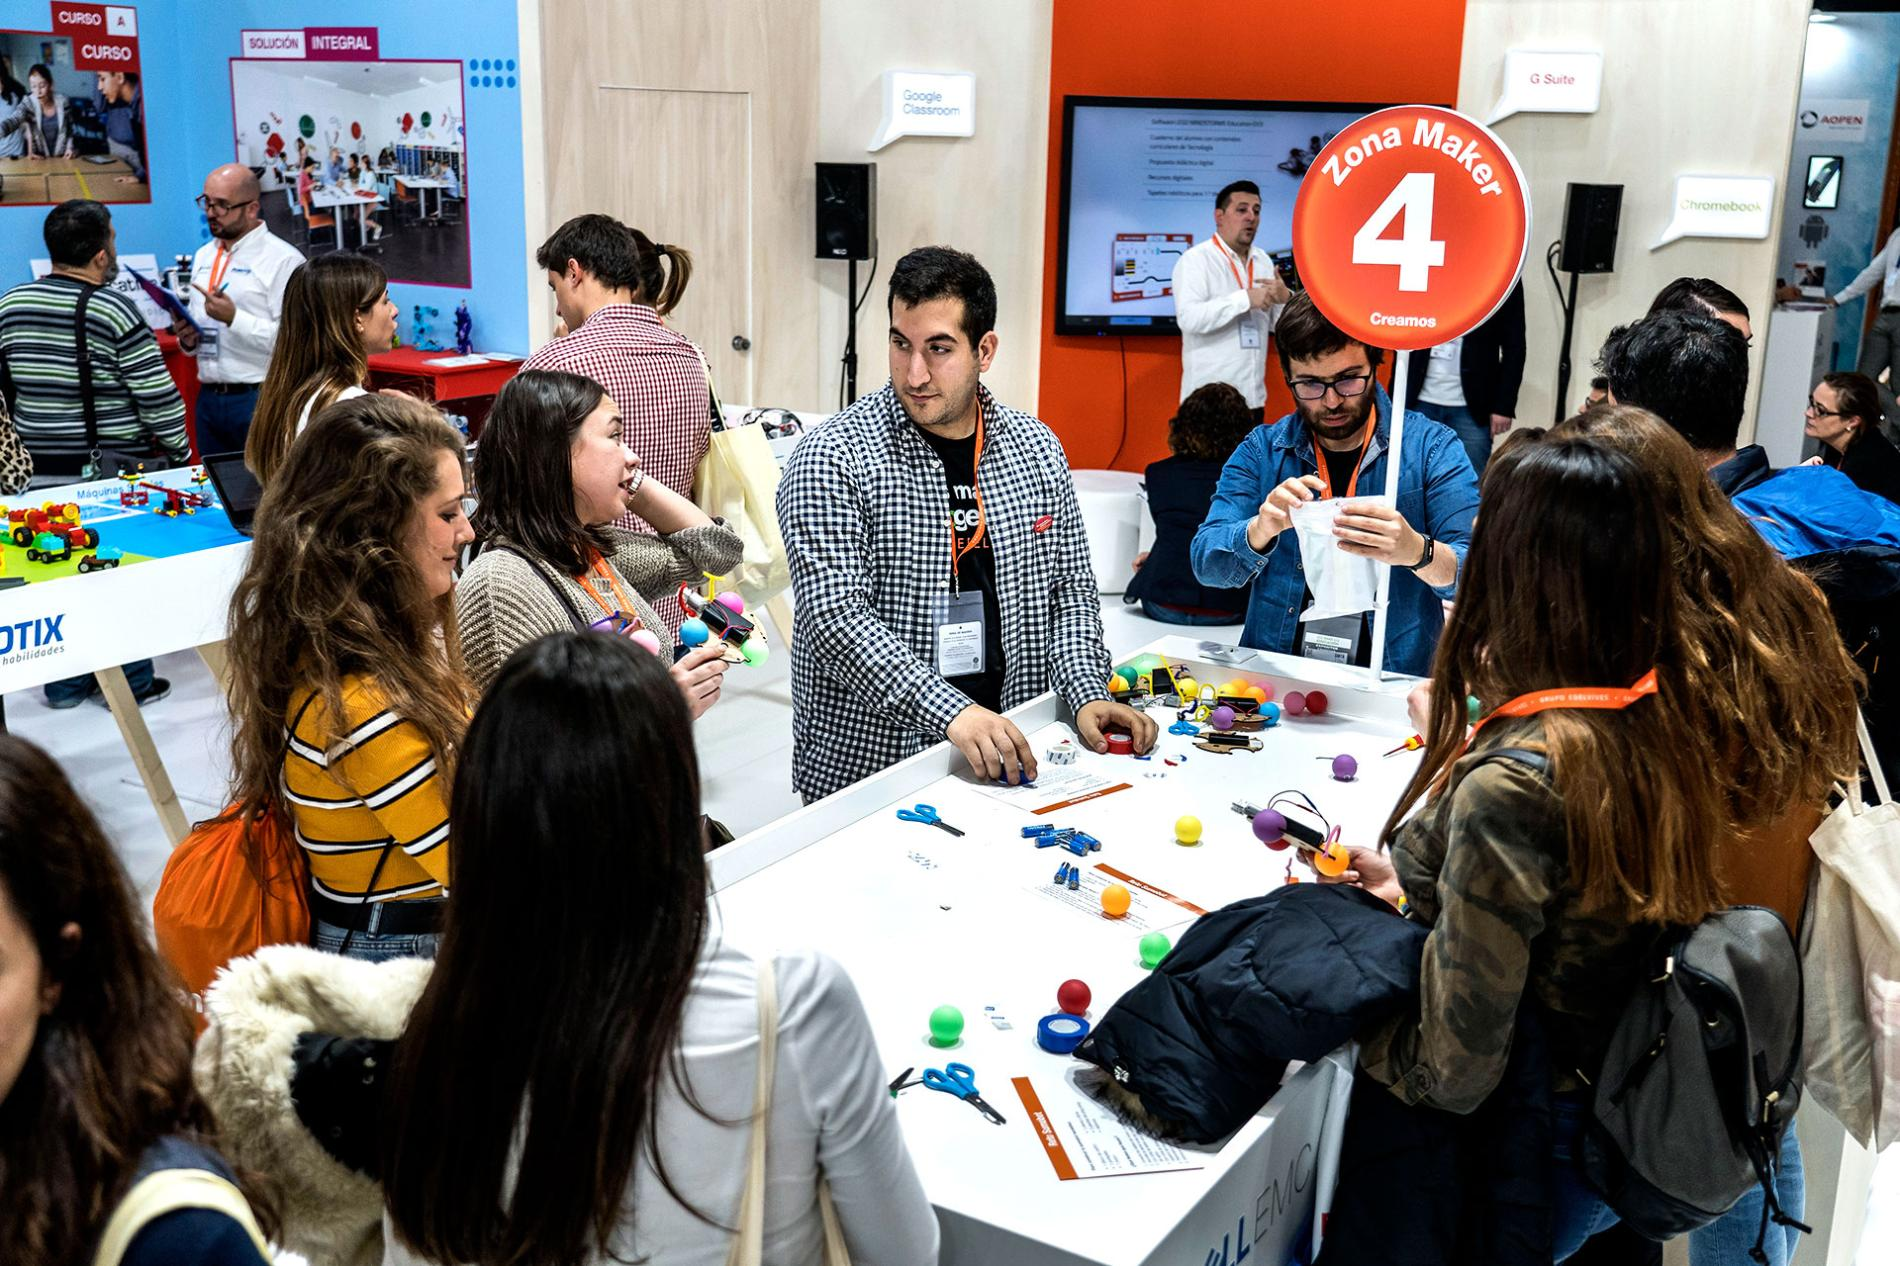 Workshop with exhibitors and visitors